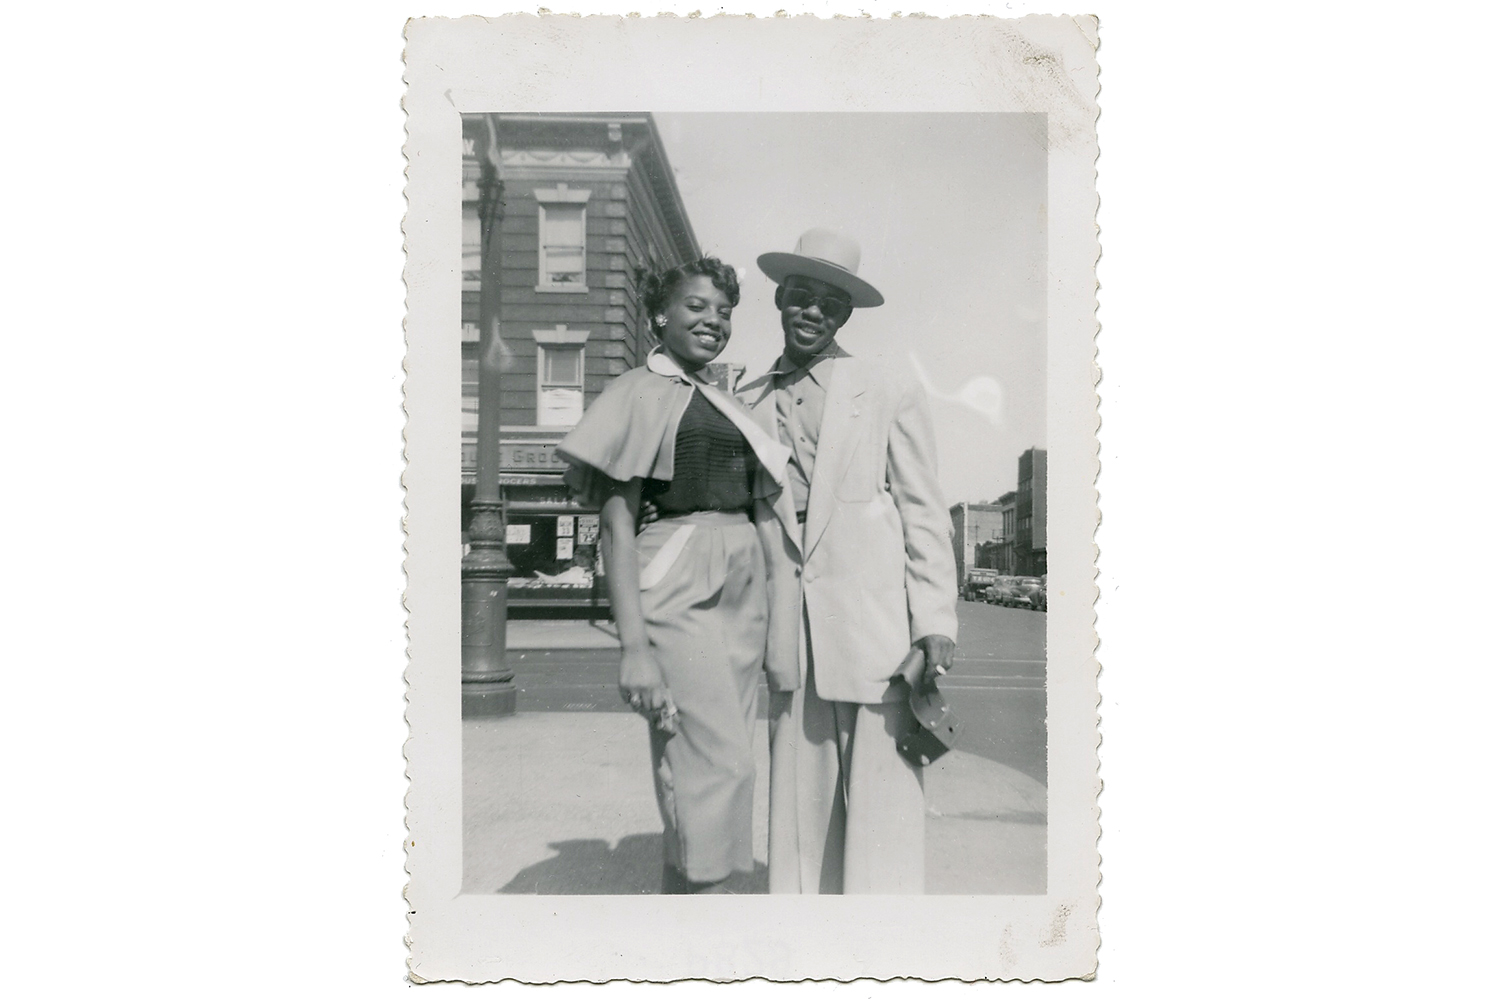 Unknown Couple, Brooklyn, c. 1950s